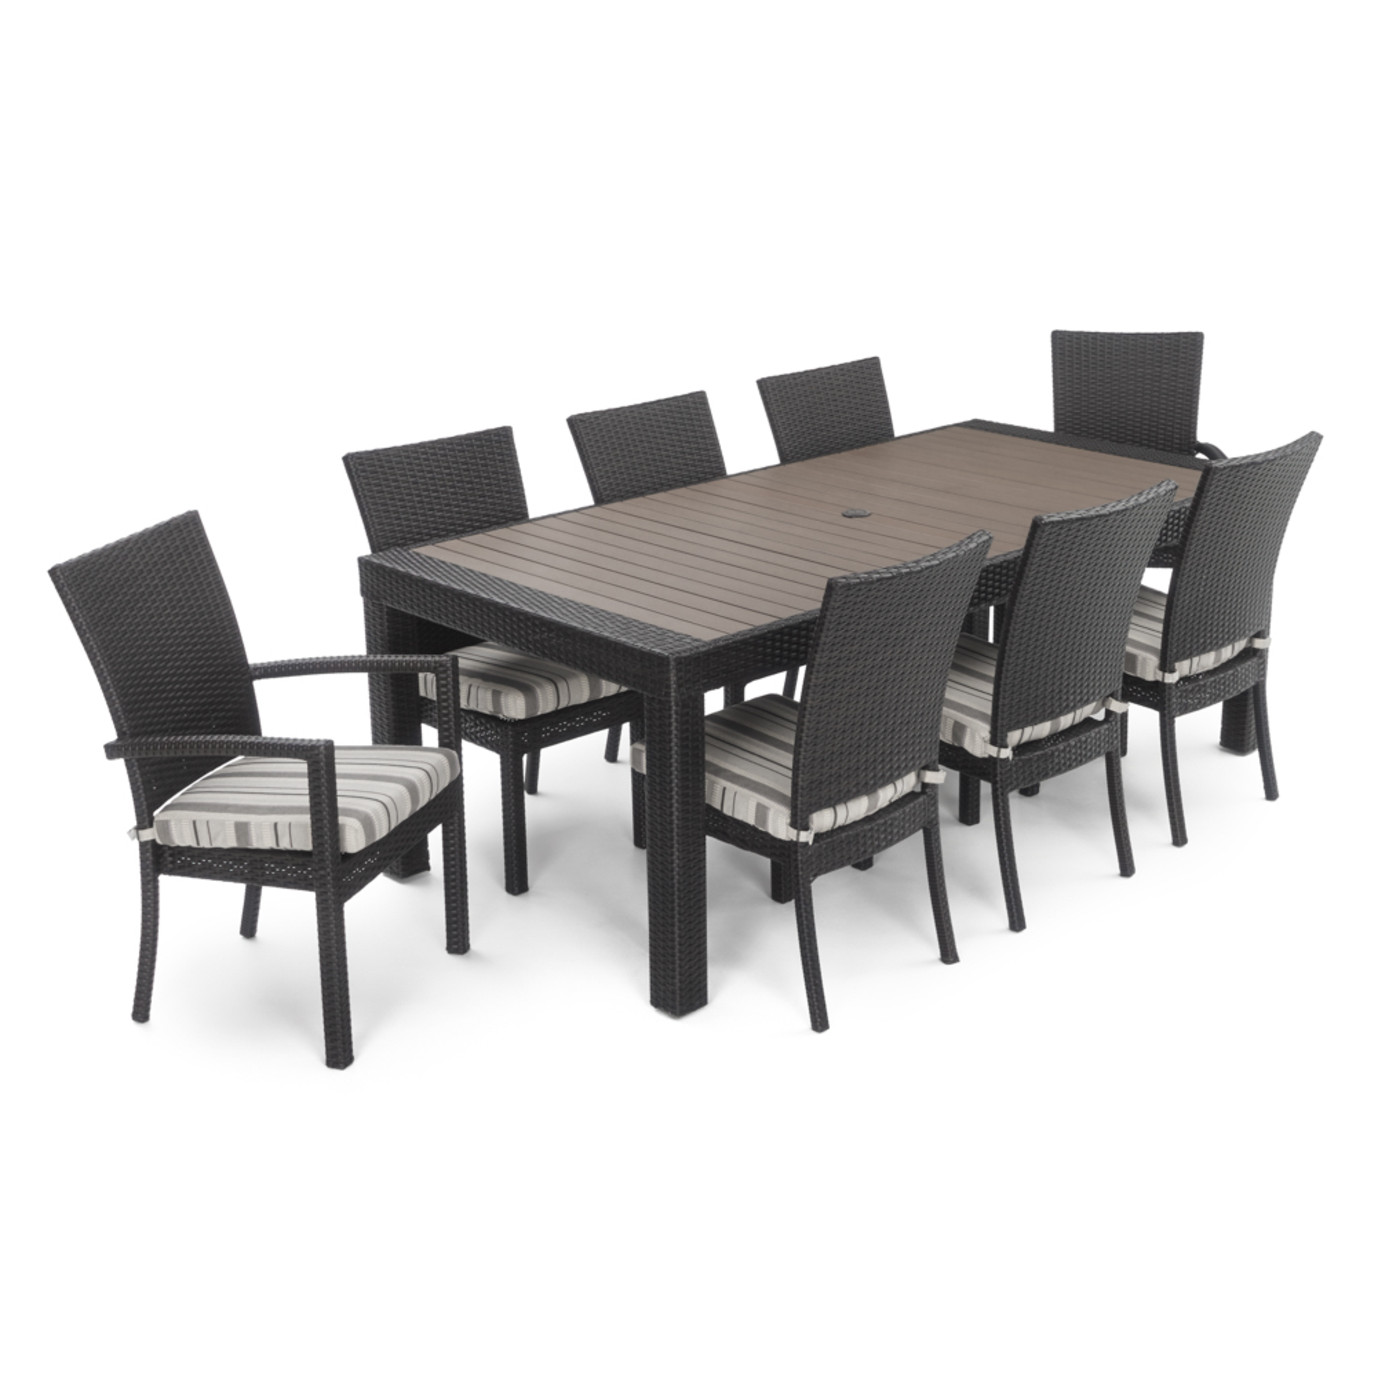 Deco™ 9pc Dining Set - Wisteria Lavender